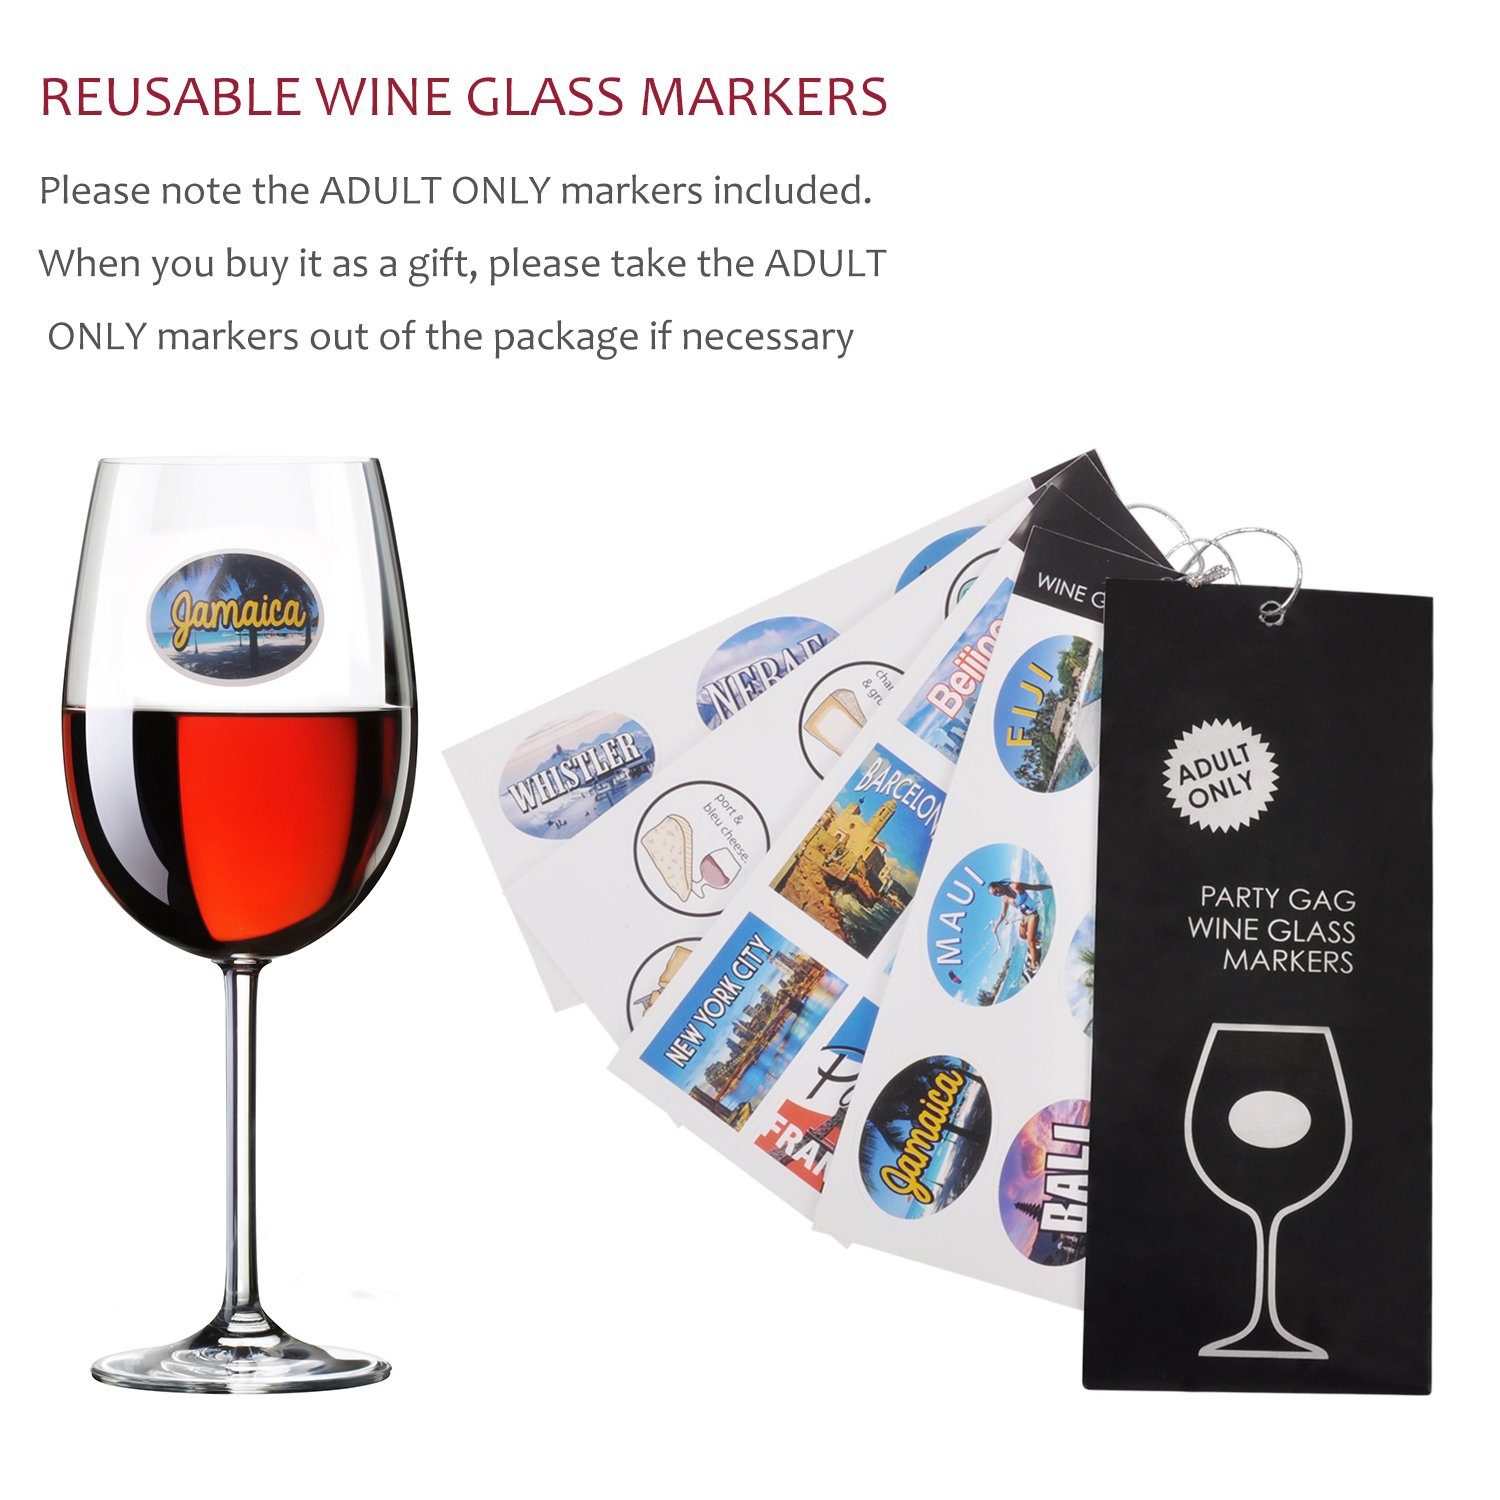 Wine Accessory Gift Set - Deluxe Wine Bottle Corkscrew Opener, Stopper, Aerator Pourer, Foil Cutter, Glass Paint Marker w/Reusable Drink Stickers in Gift Box, Wine Gifts for Wine Lover by Friend of Vines (Image #5)